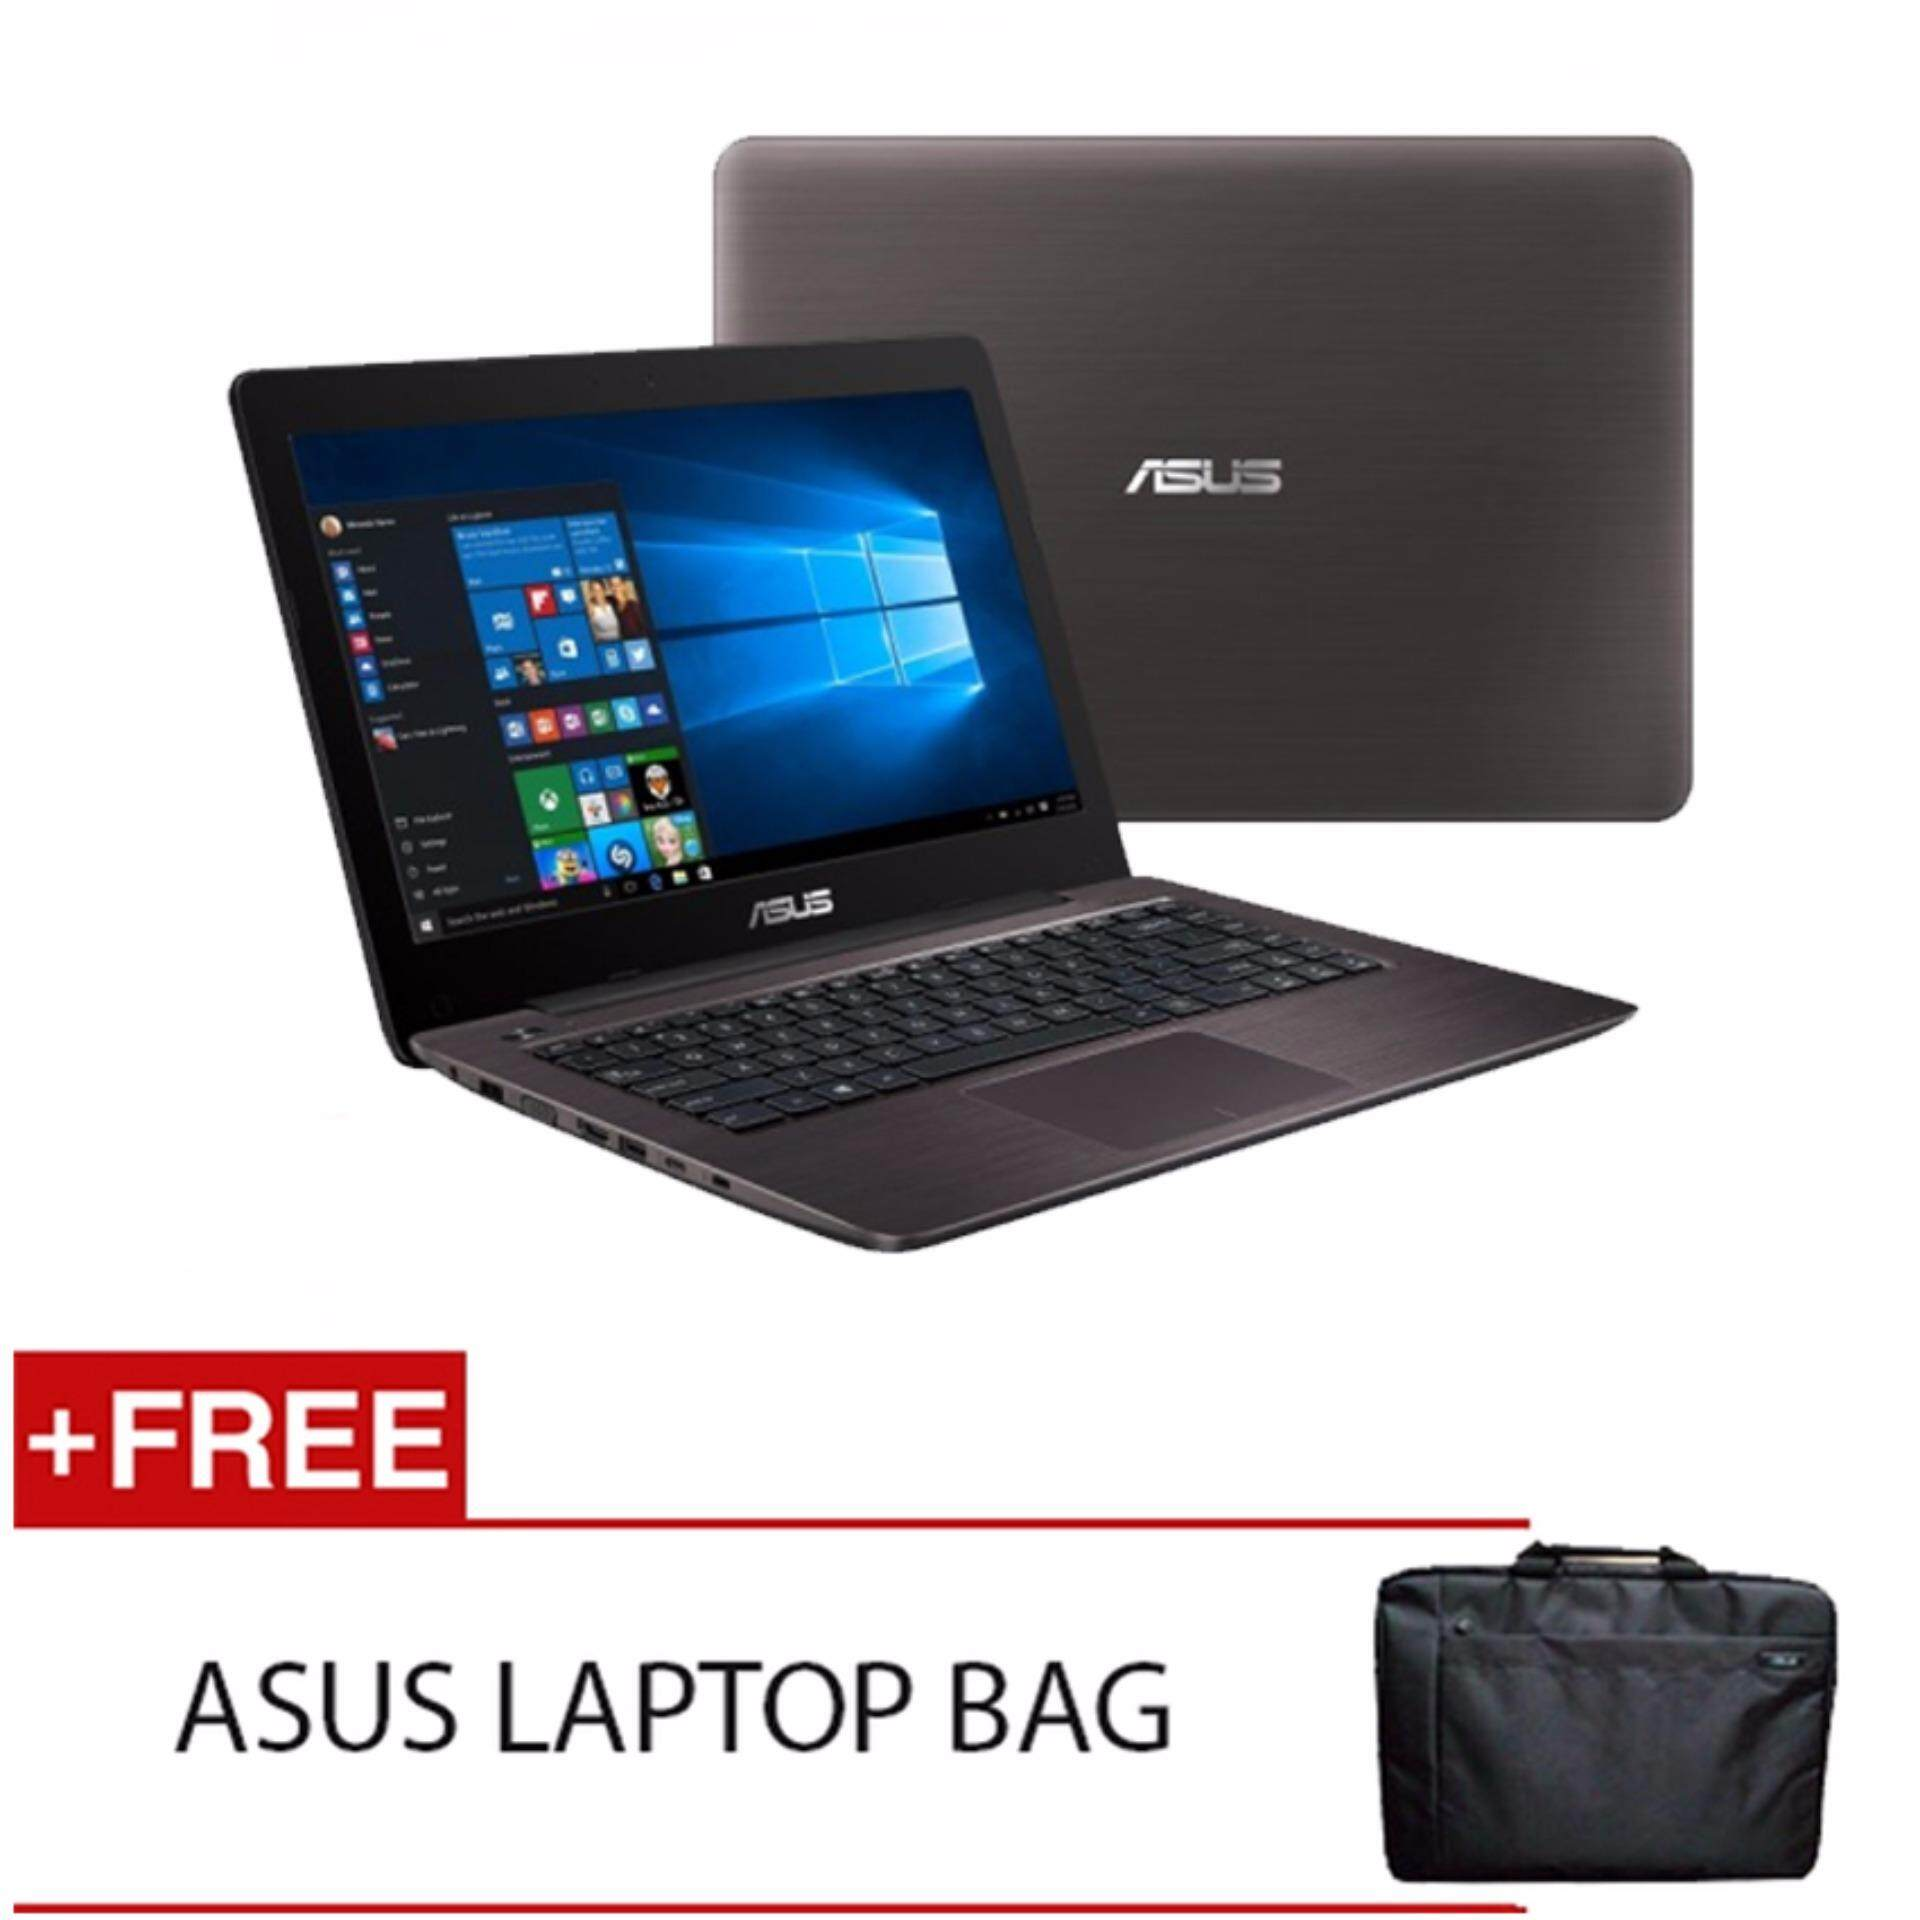 ASUS A456U-RFA131T I5-7200U 4GD4 1TB NV930MX 2GD3 WIN10H (BROWN) FREE ASUS LAPTOP BAG Malaysia